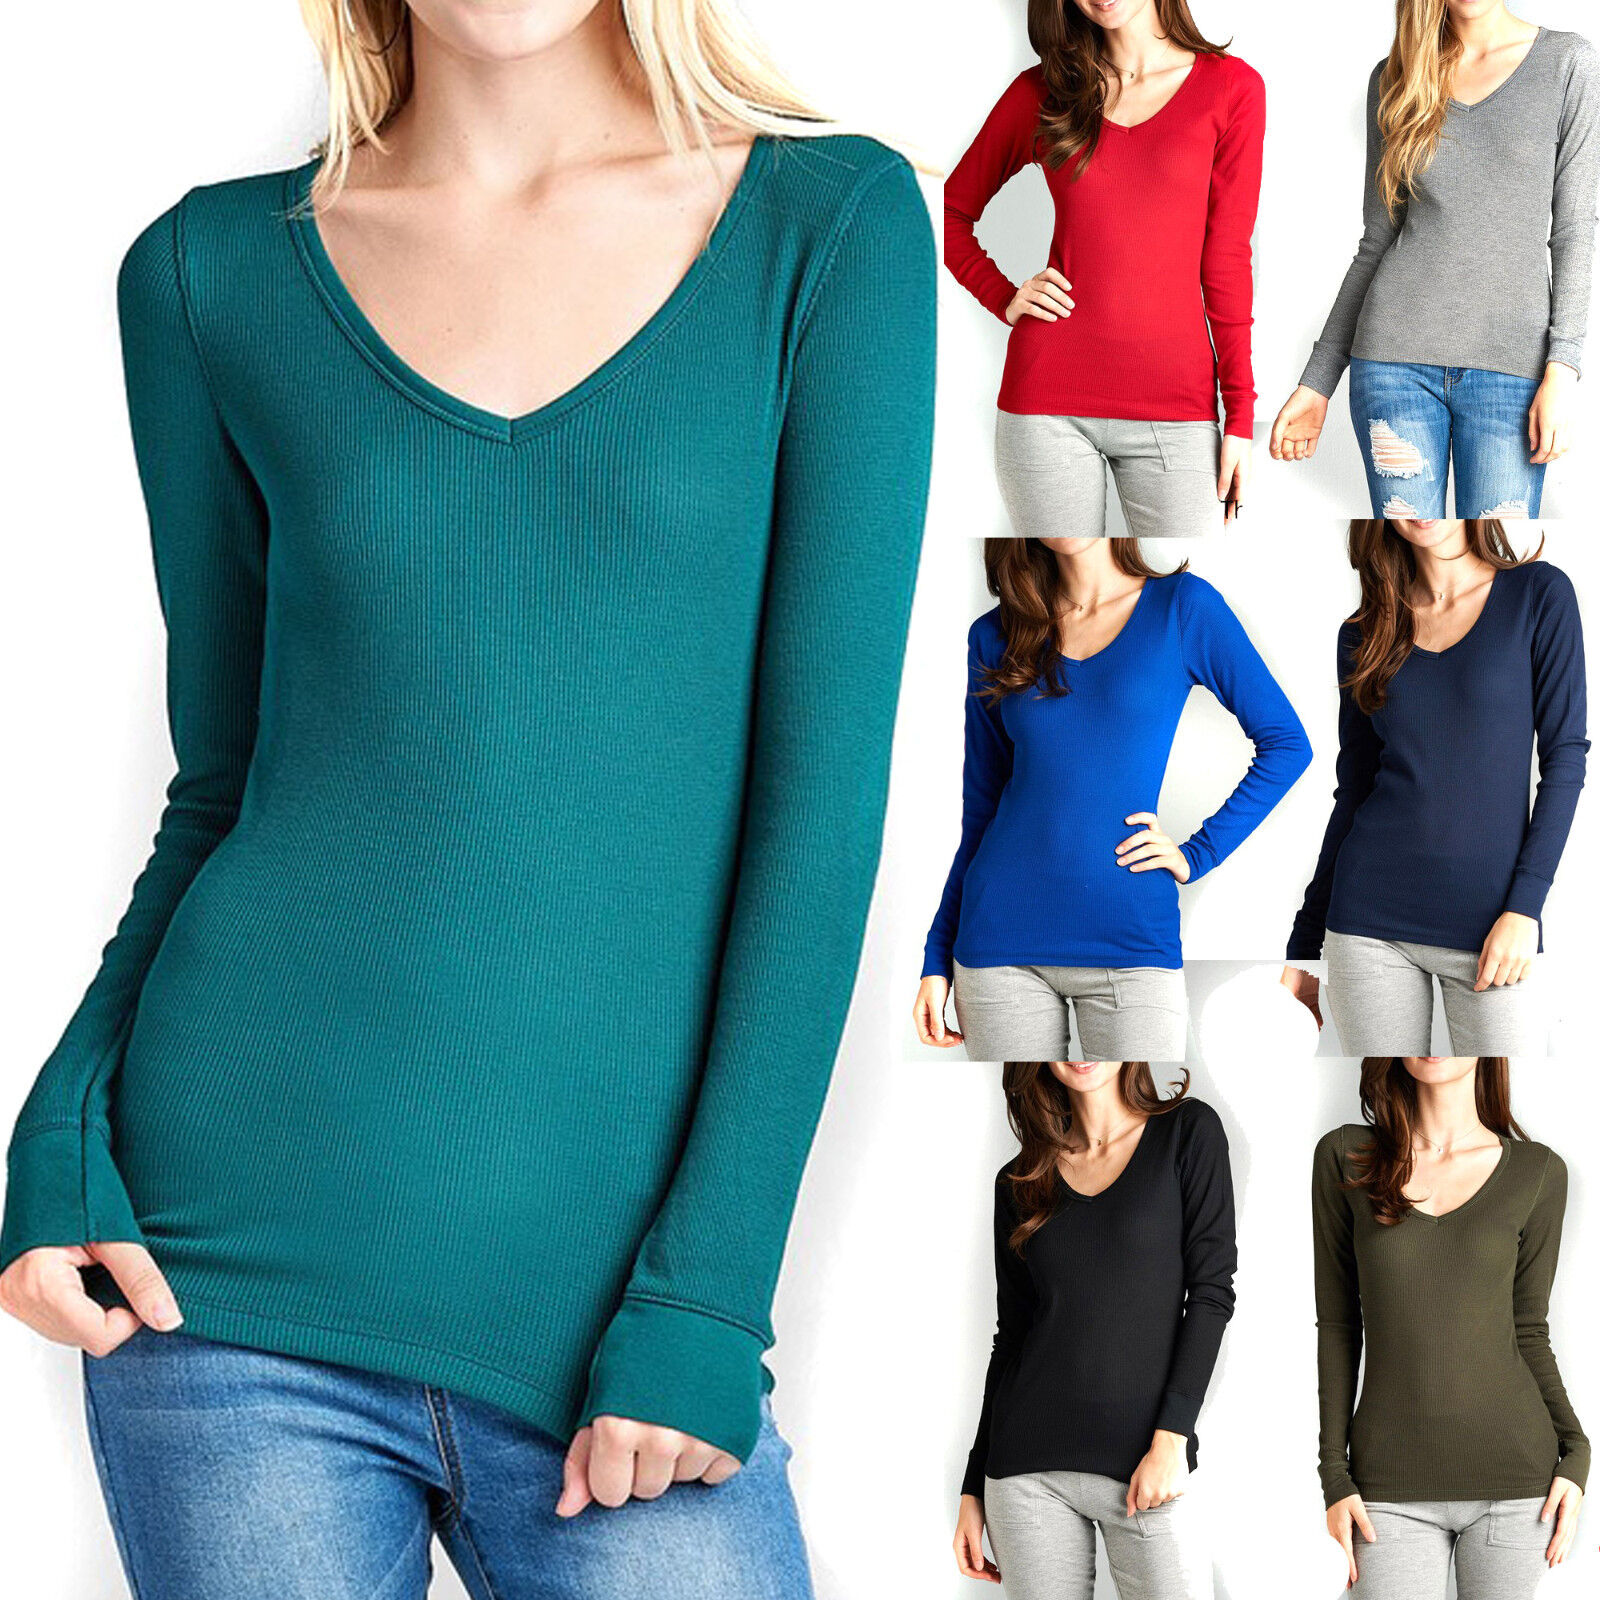 как выглядит Женский вязаный топ Thermal V-NECK NECK Long Sleeve Basic Top Womens T-Shirt Plain Soft Waffle knit фото